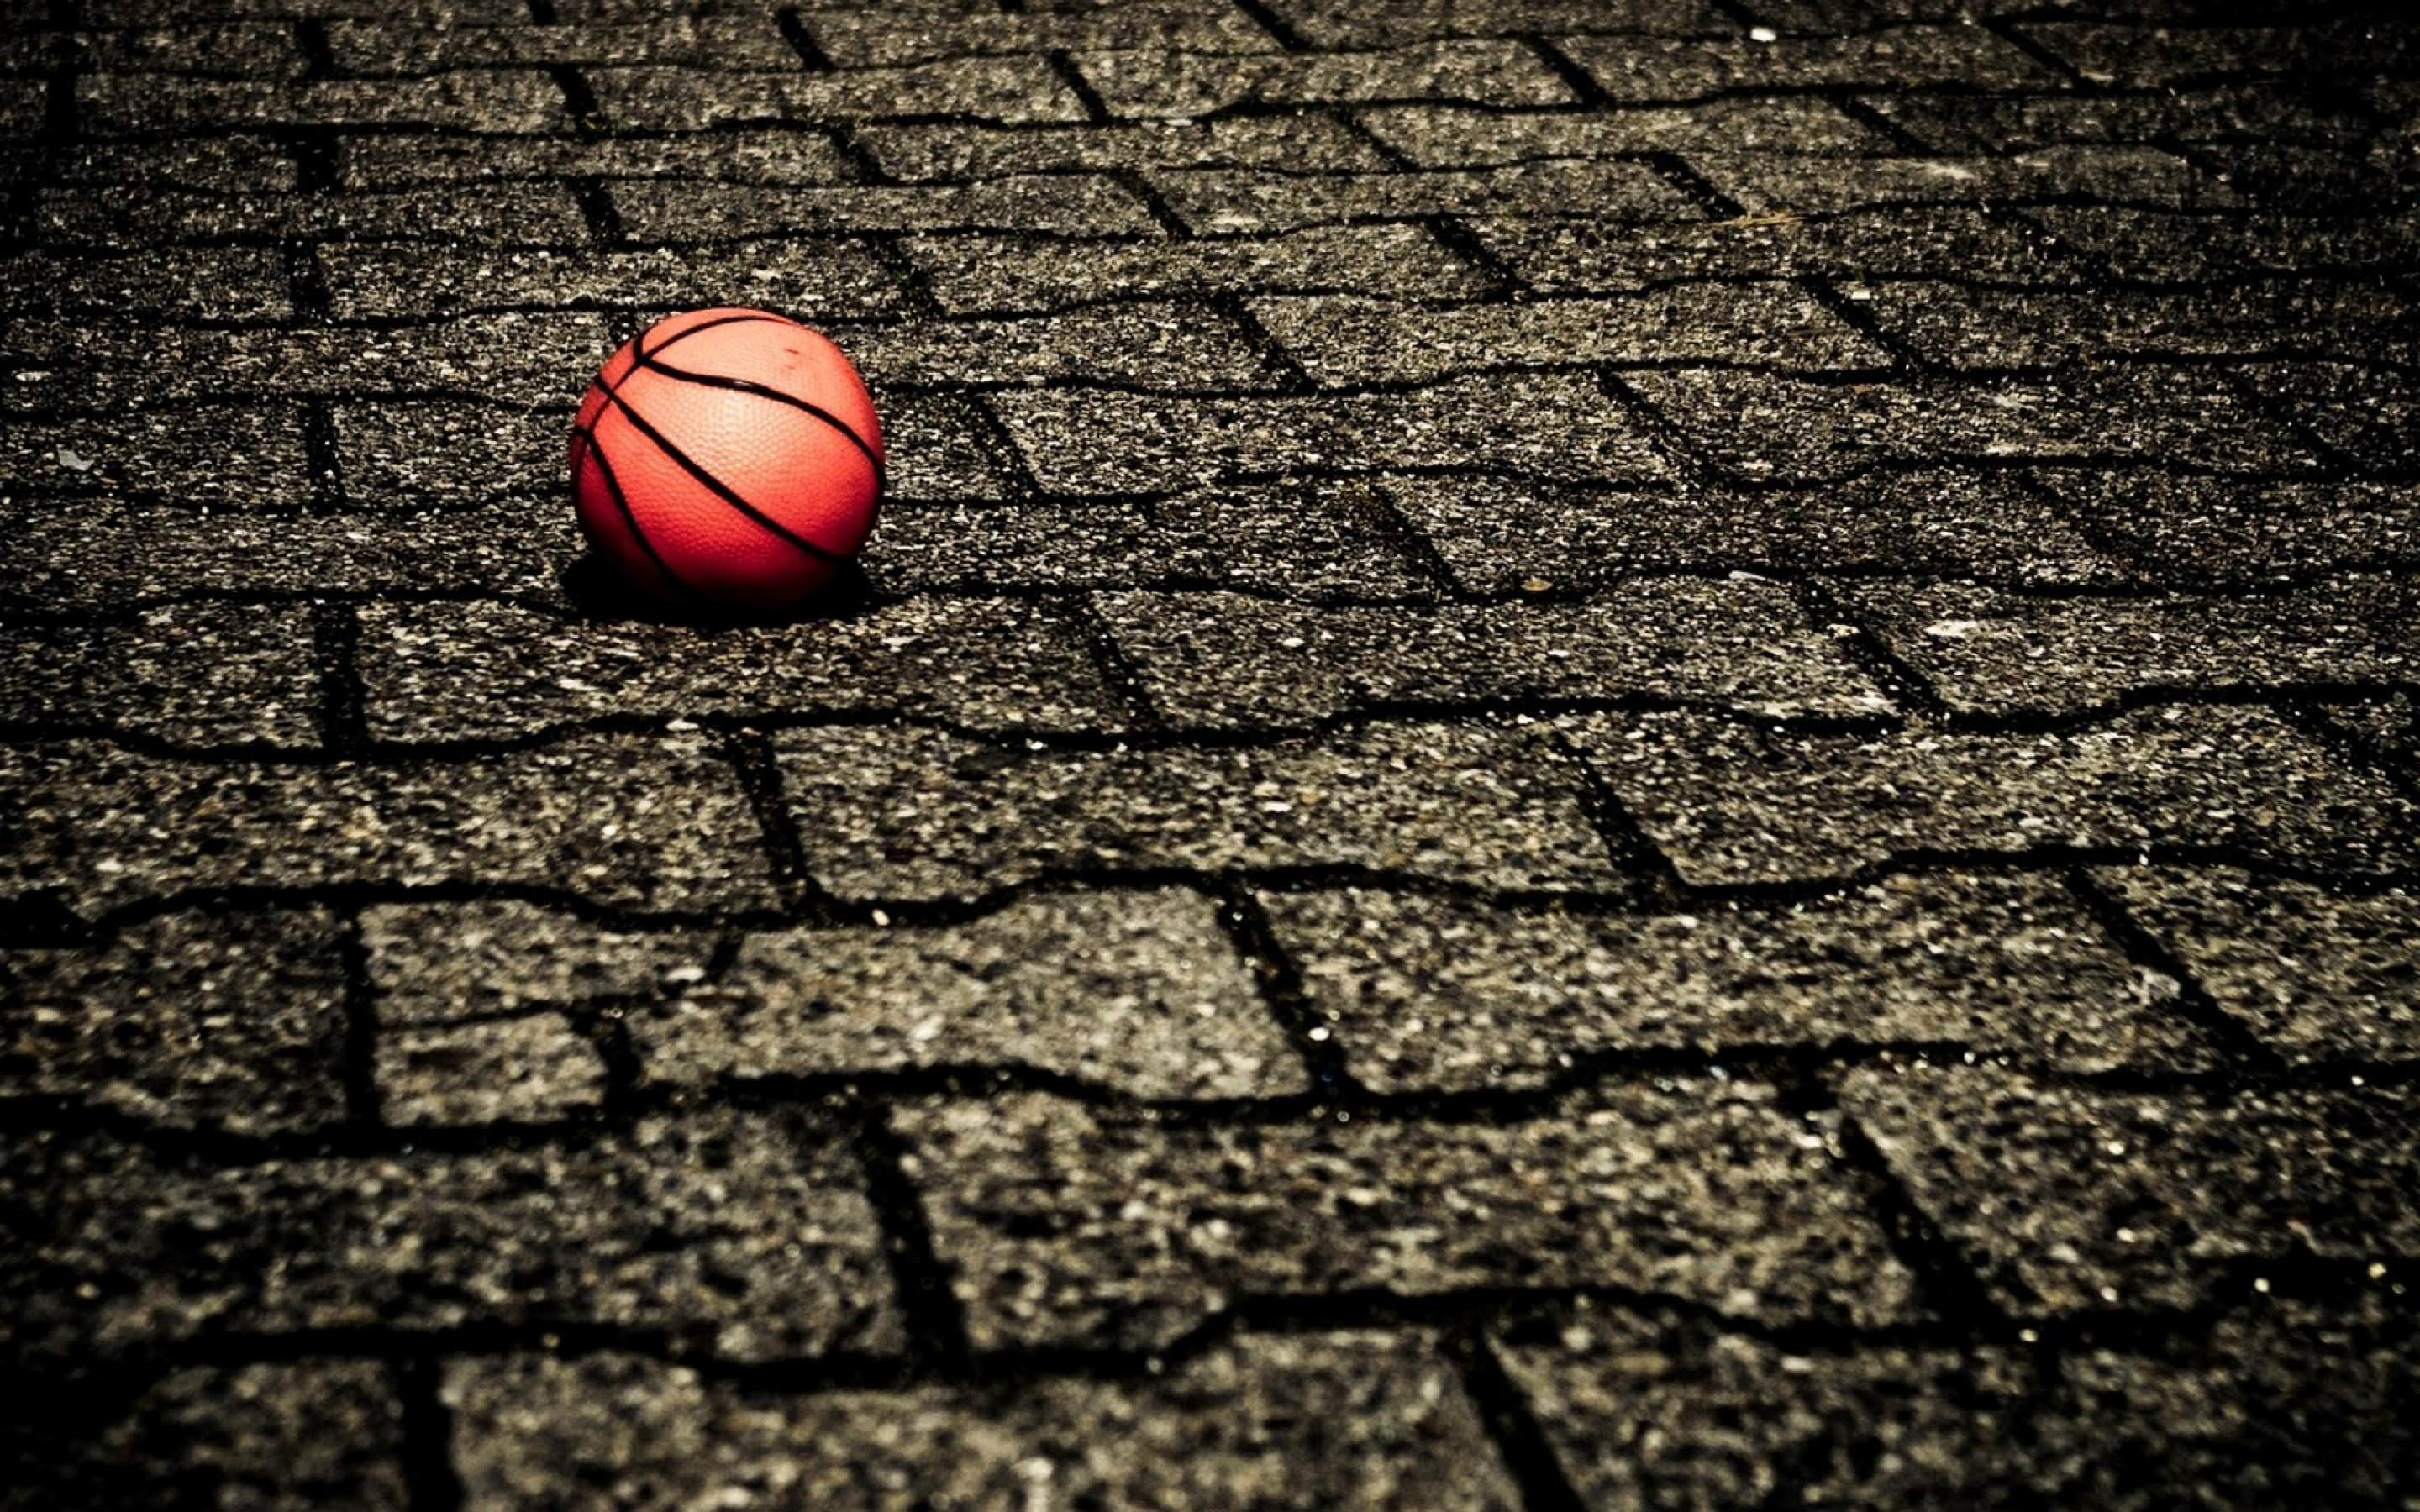 25 Basketball Wallpapers Backgrounds ImagesPictures 2880x1800